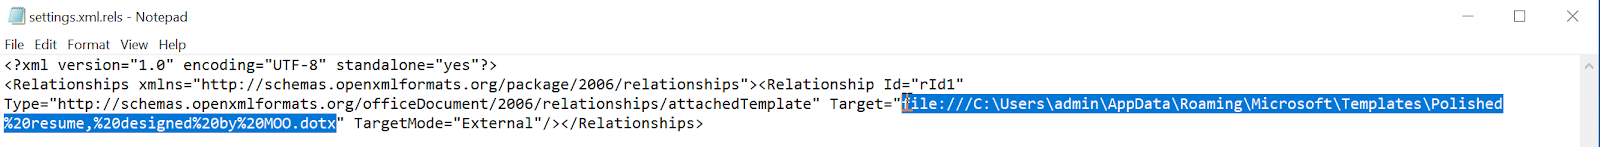 Red XOR Blue: Executing Macros From a DOCX With Remote